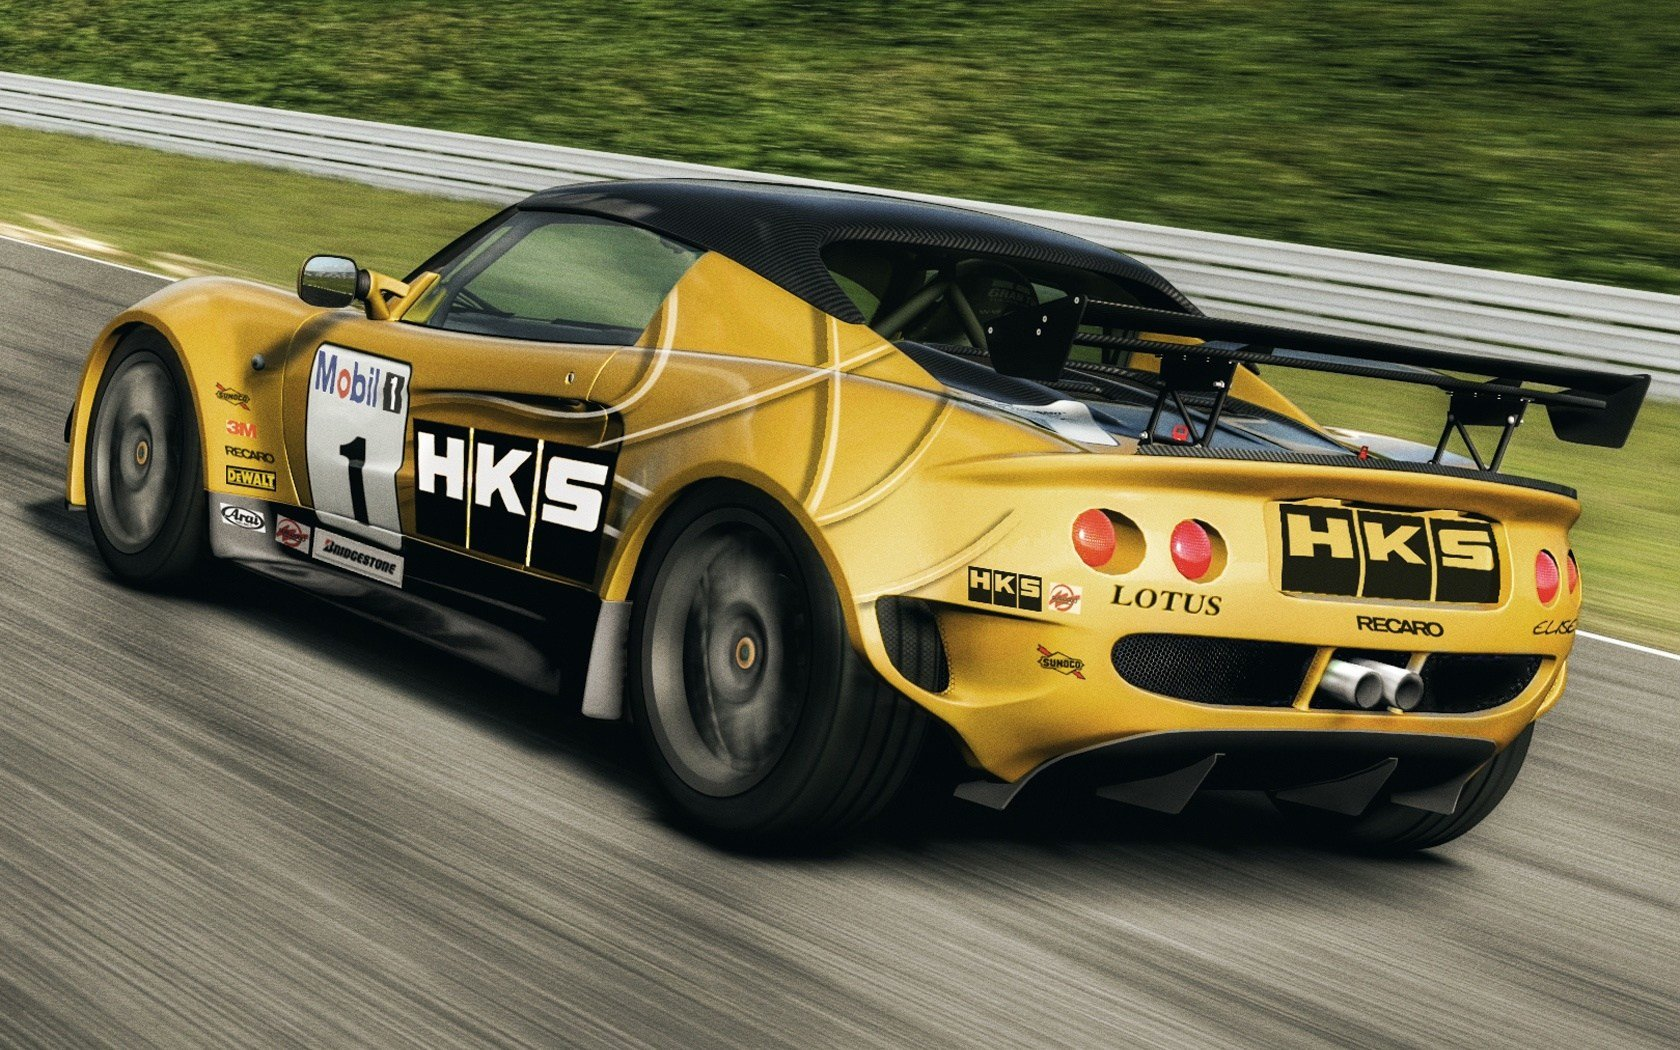 Latest Lotus Elise Race Car 1680X1050 Wallpaper Free Download